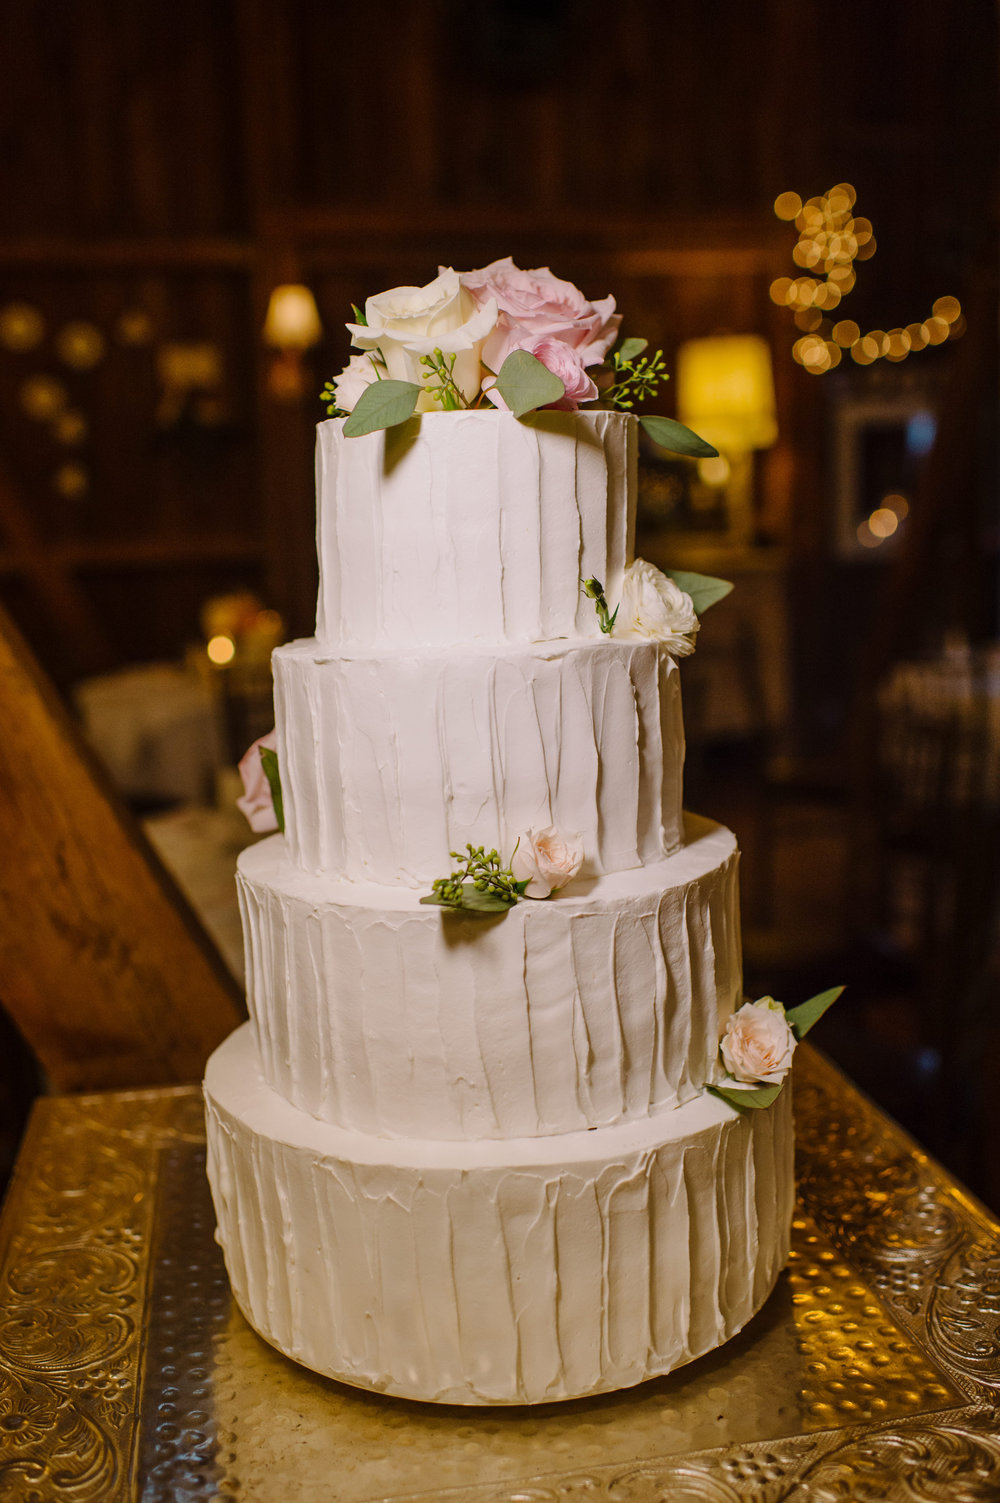 Cake with Flowers (Photo Credit: L. Hewitt Photography)